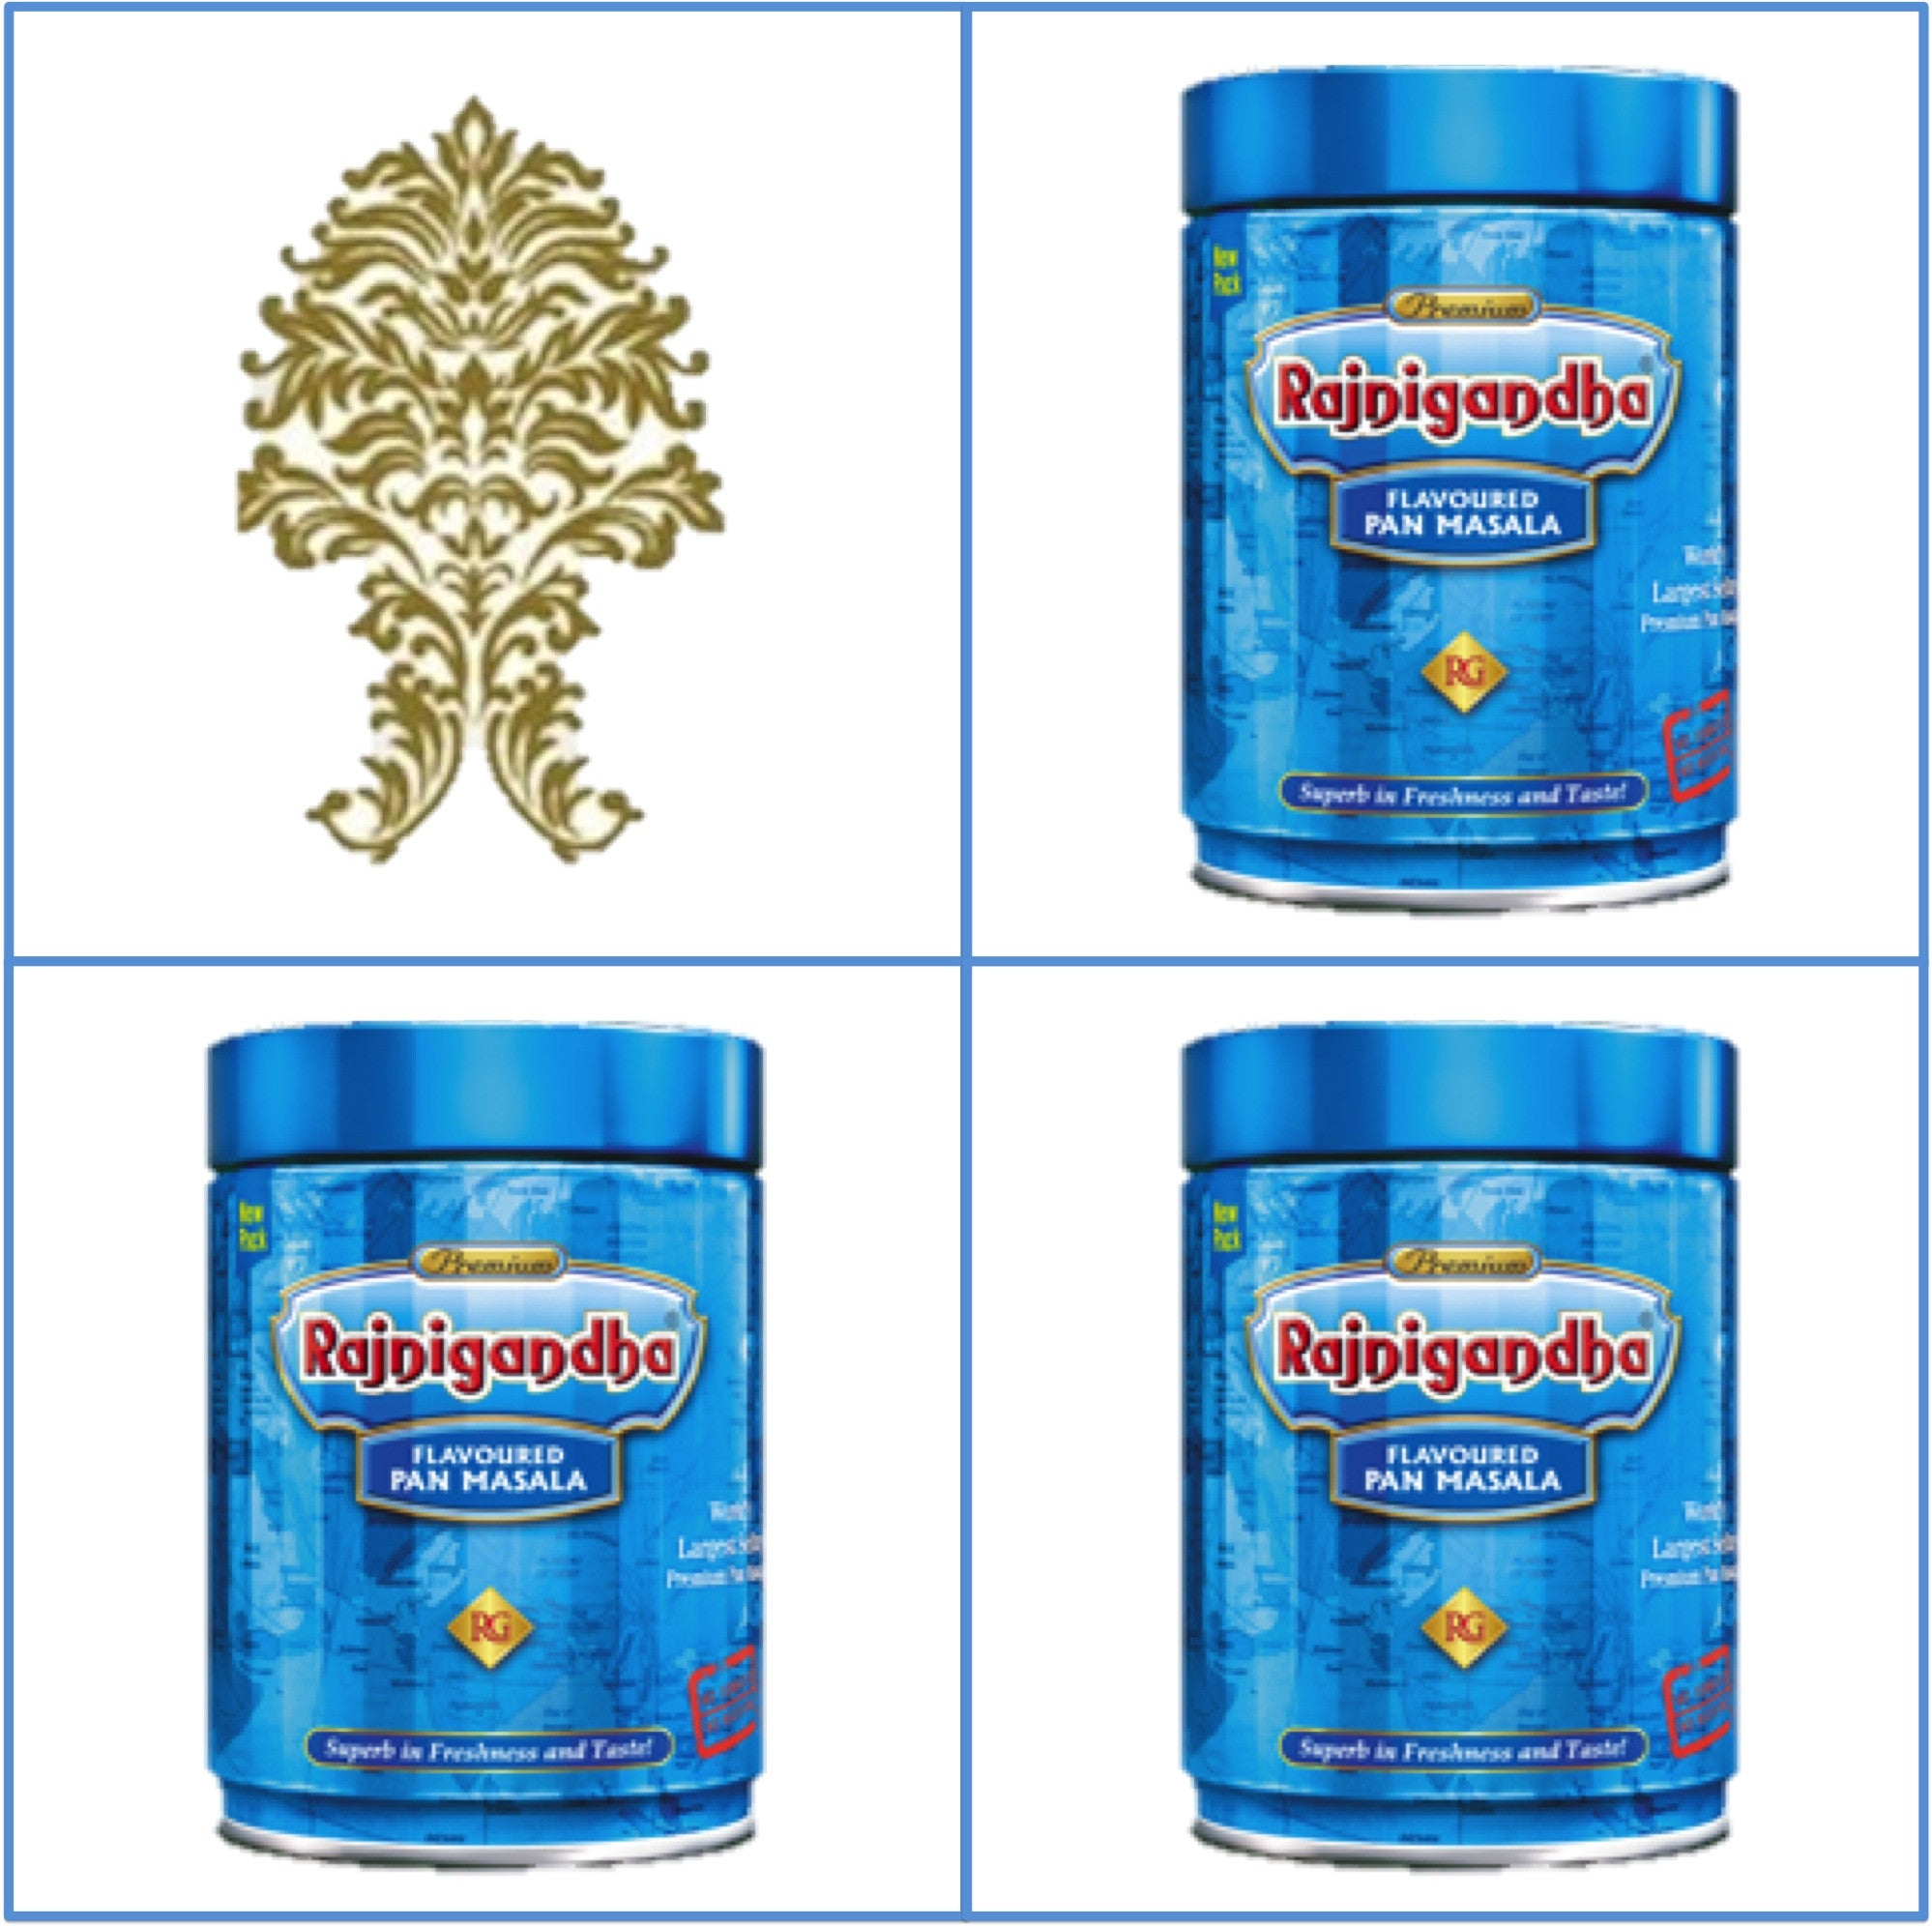 3 Cans  100g Rajnigandha Pan Masala  Export Quality  November 2018